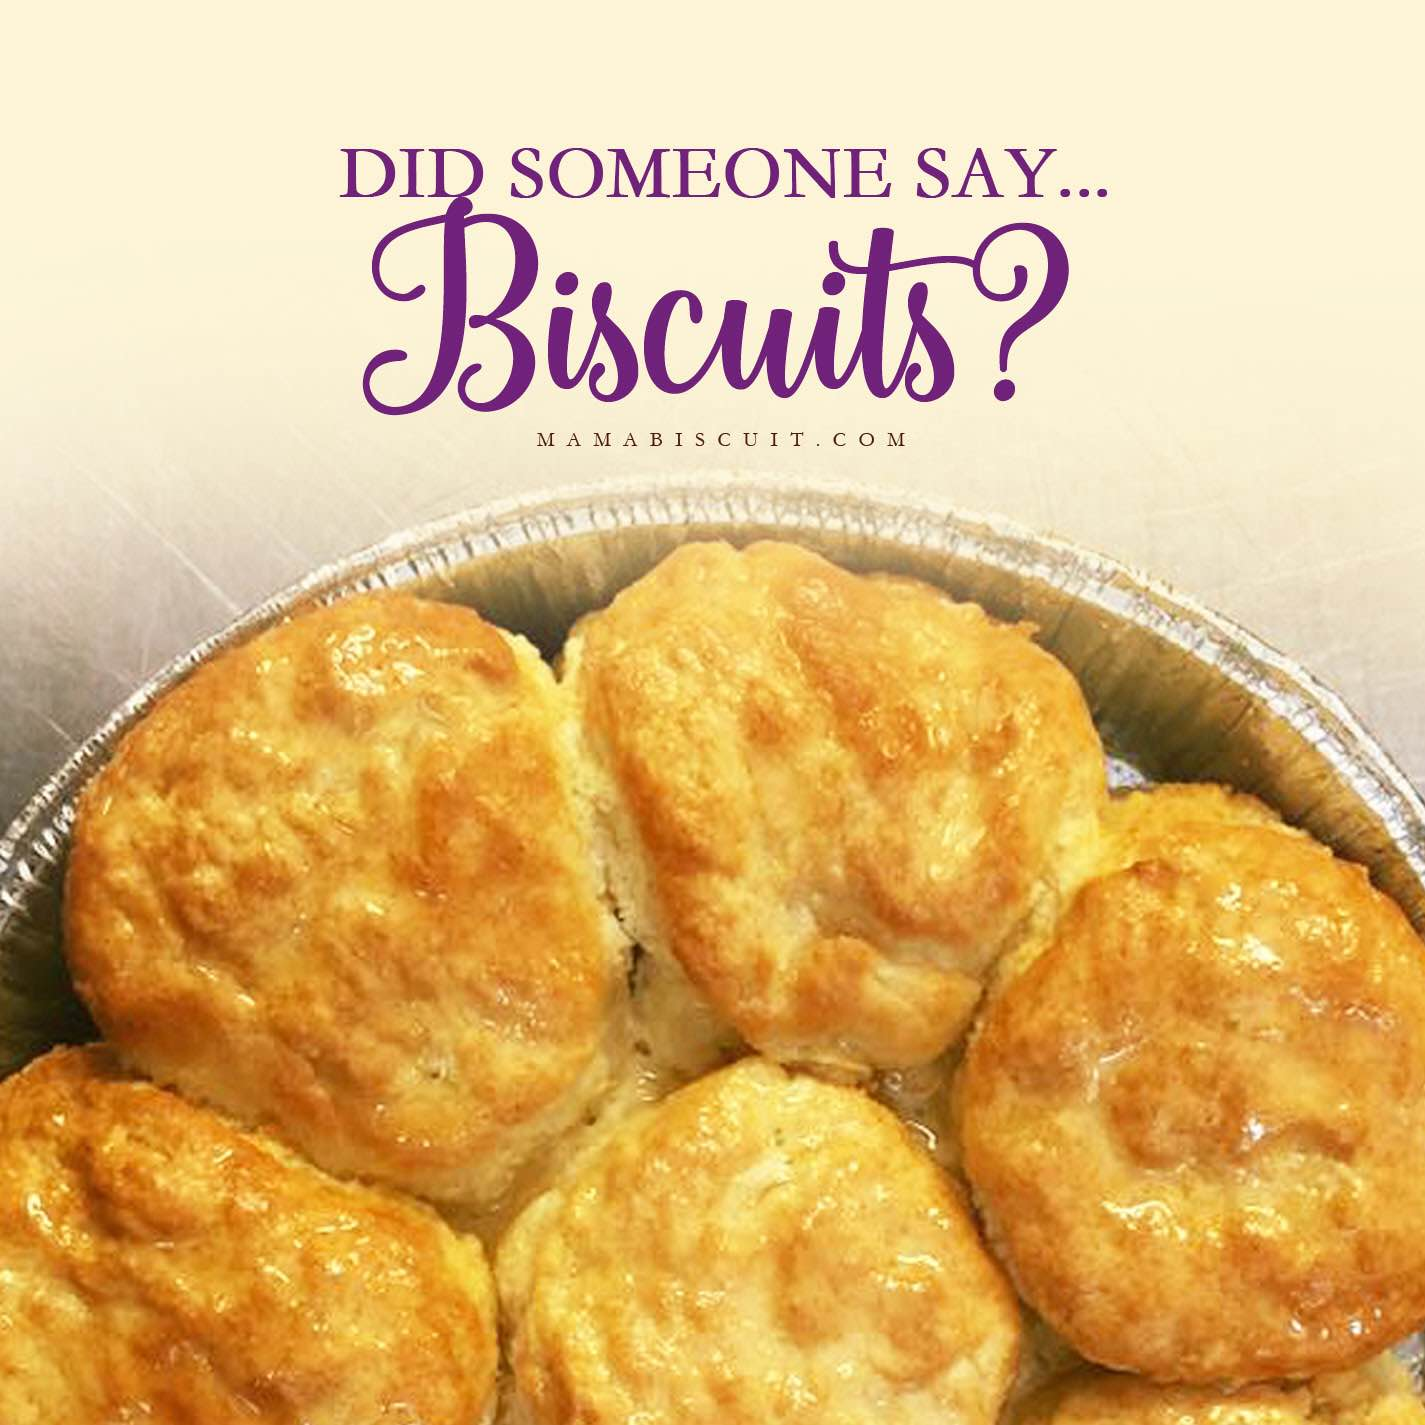 did-someone-say-biscuits.jpg